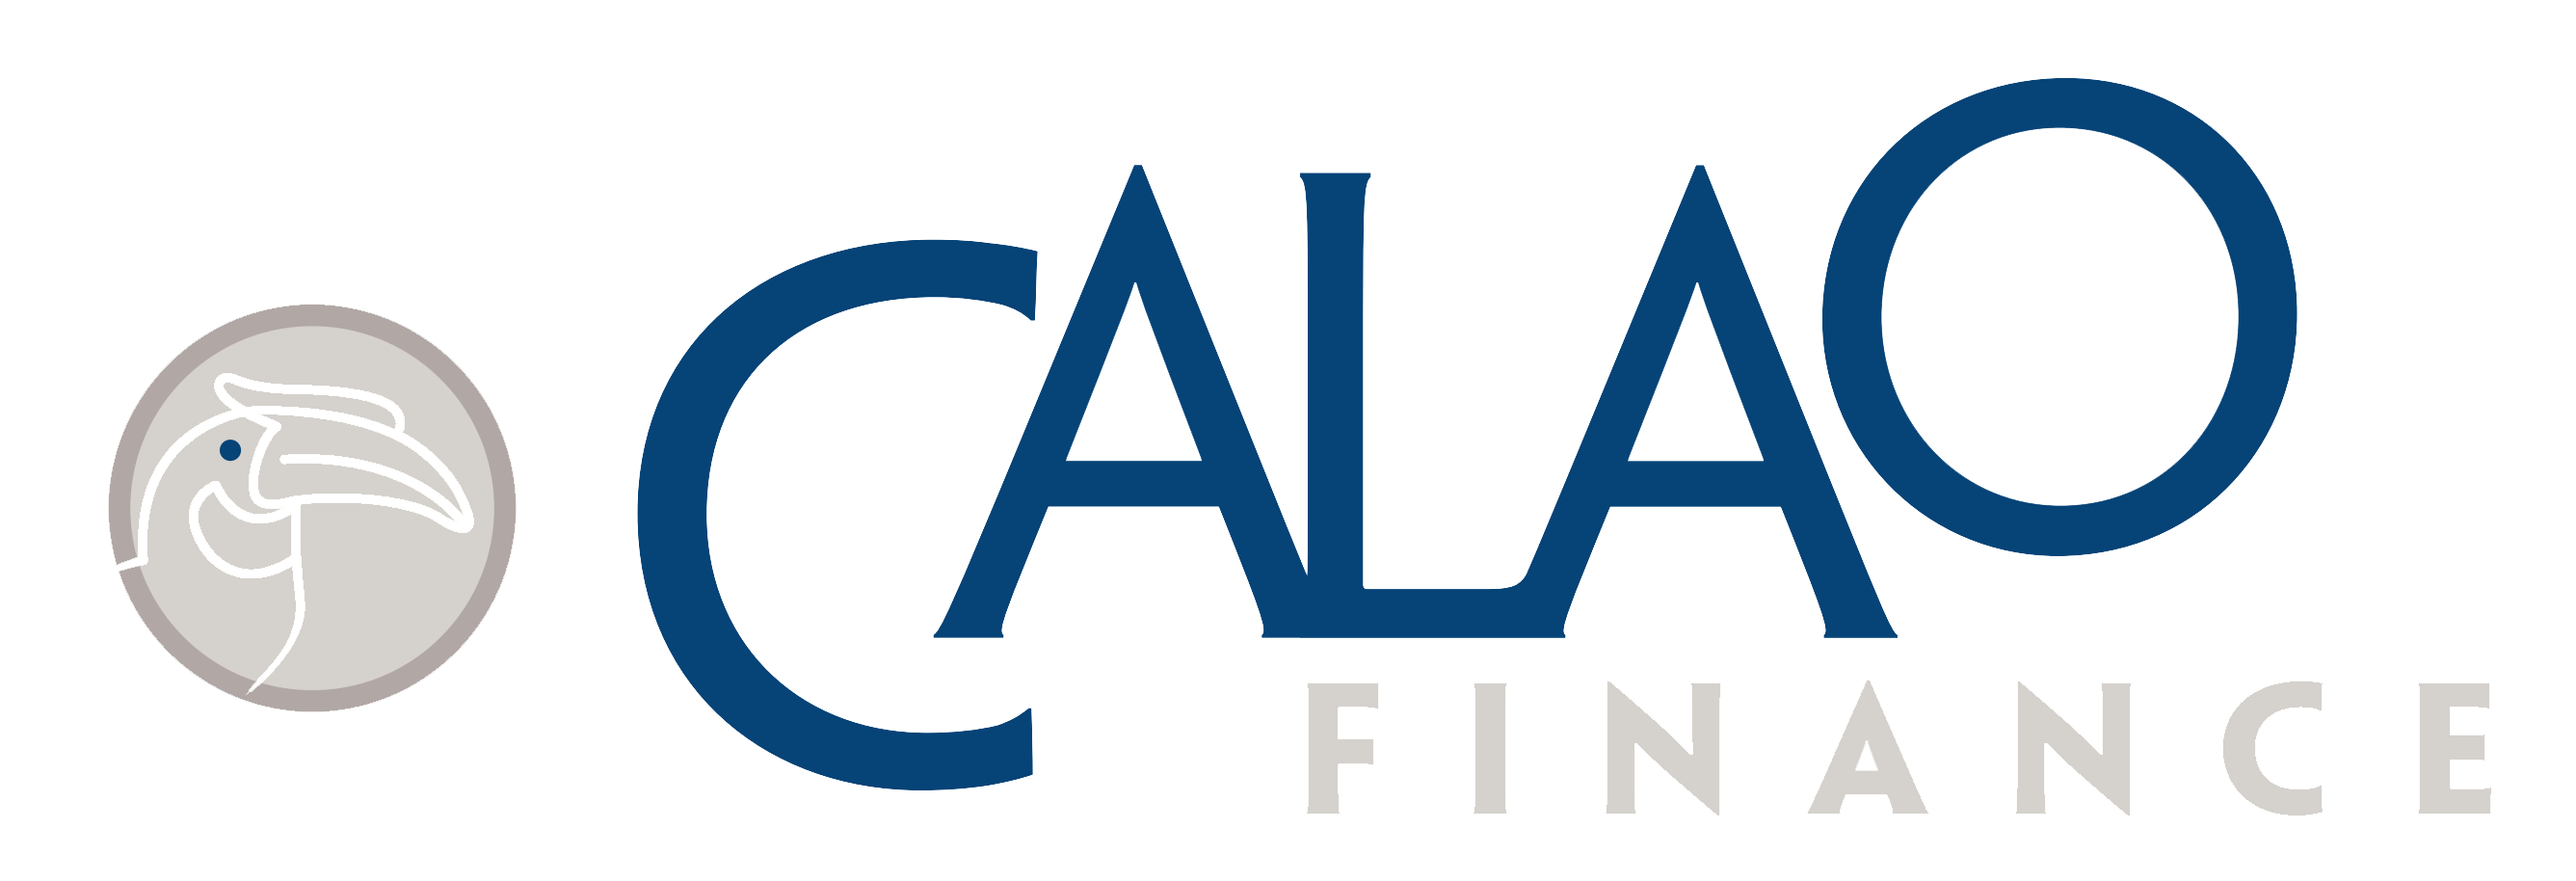 Logo Calao Finance - The Computer Firm